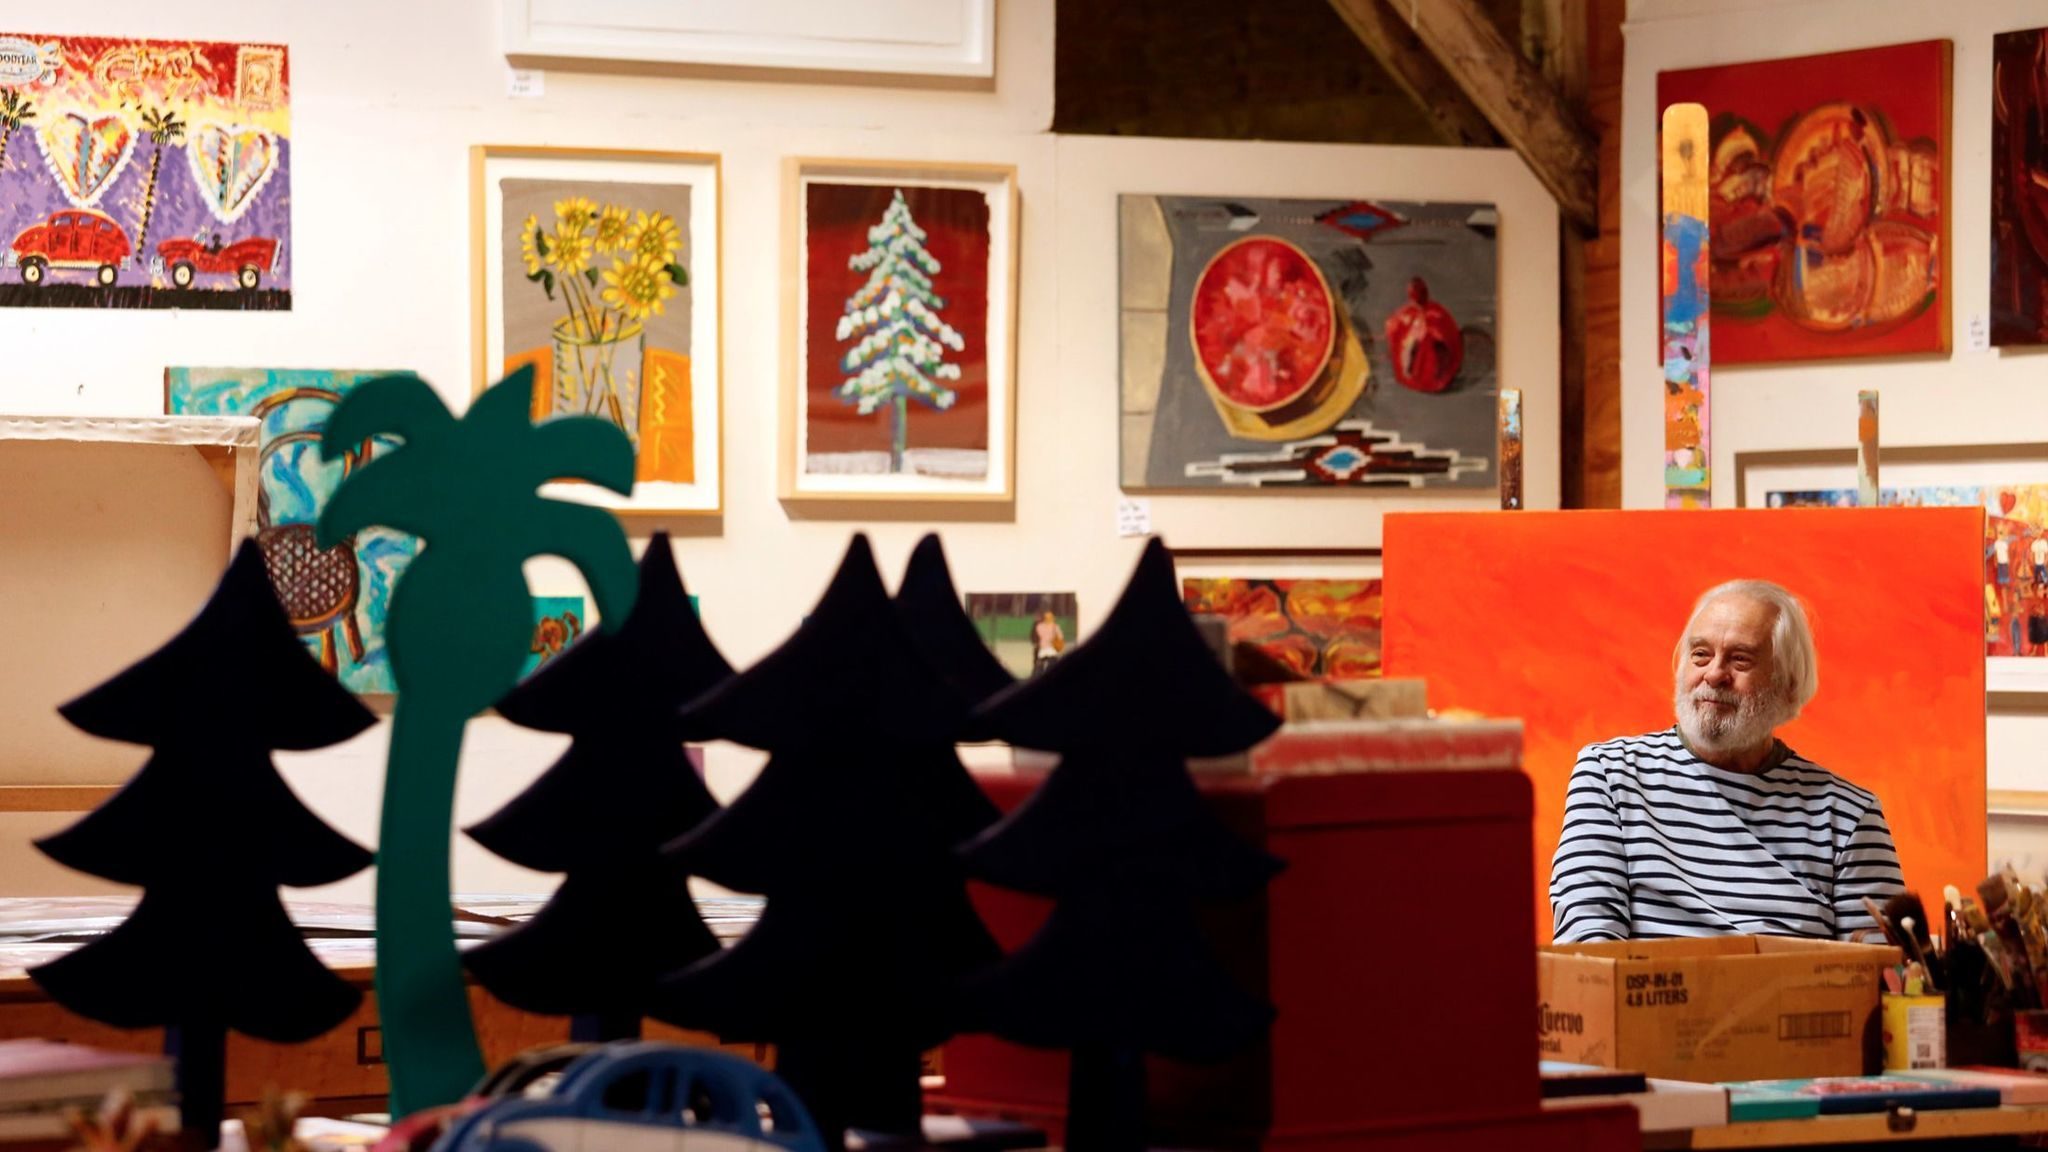 Frank Romero sits among his paintings and various works in progress in his sprawling Los Angeles studio.